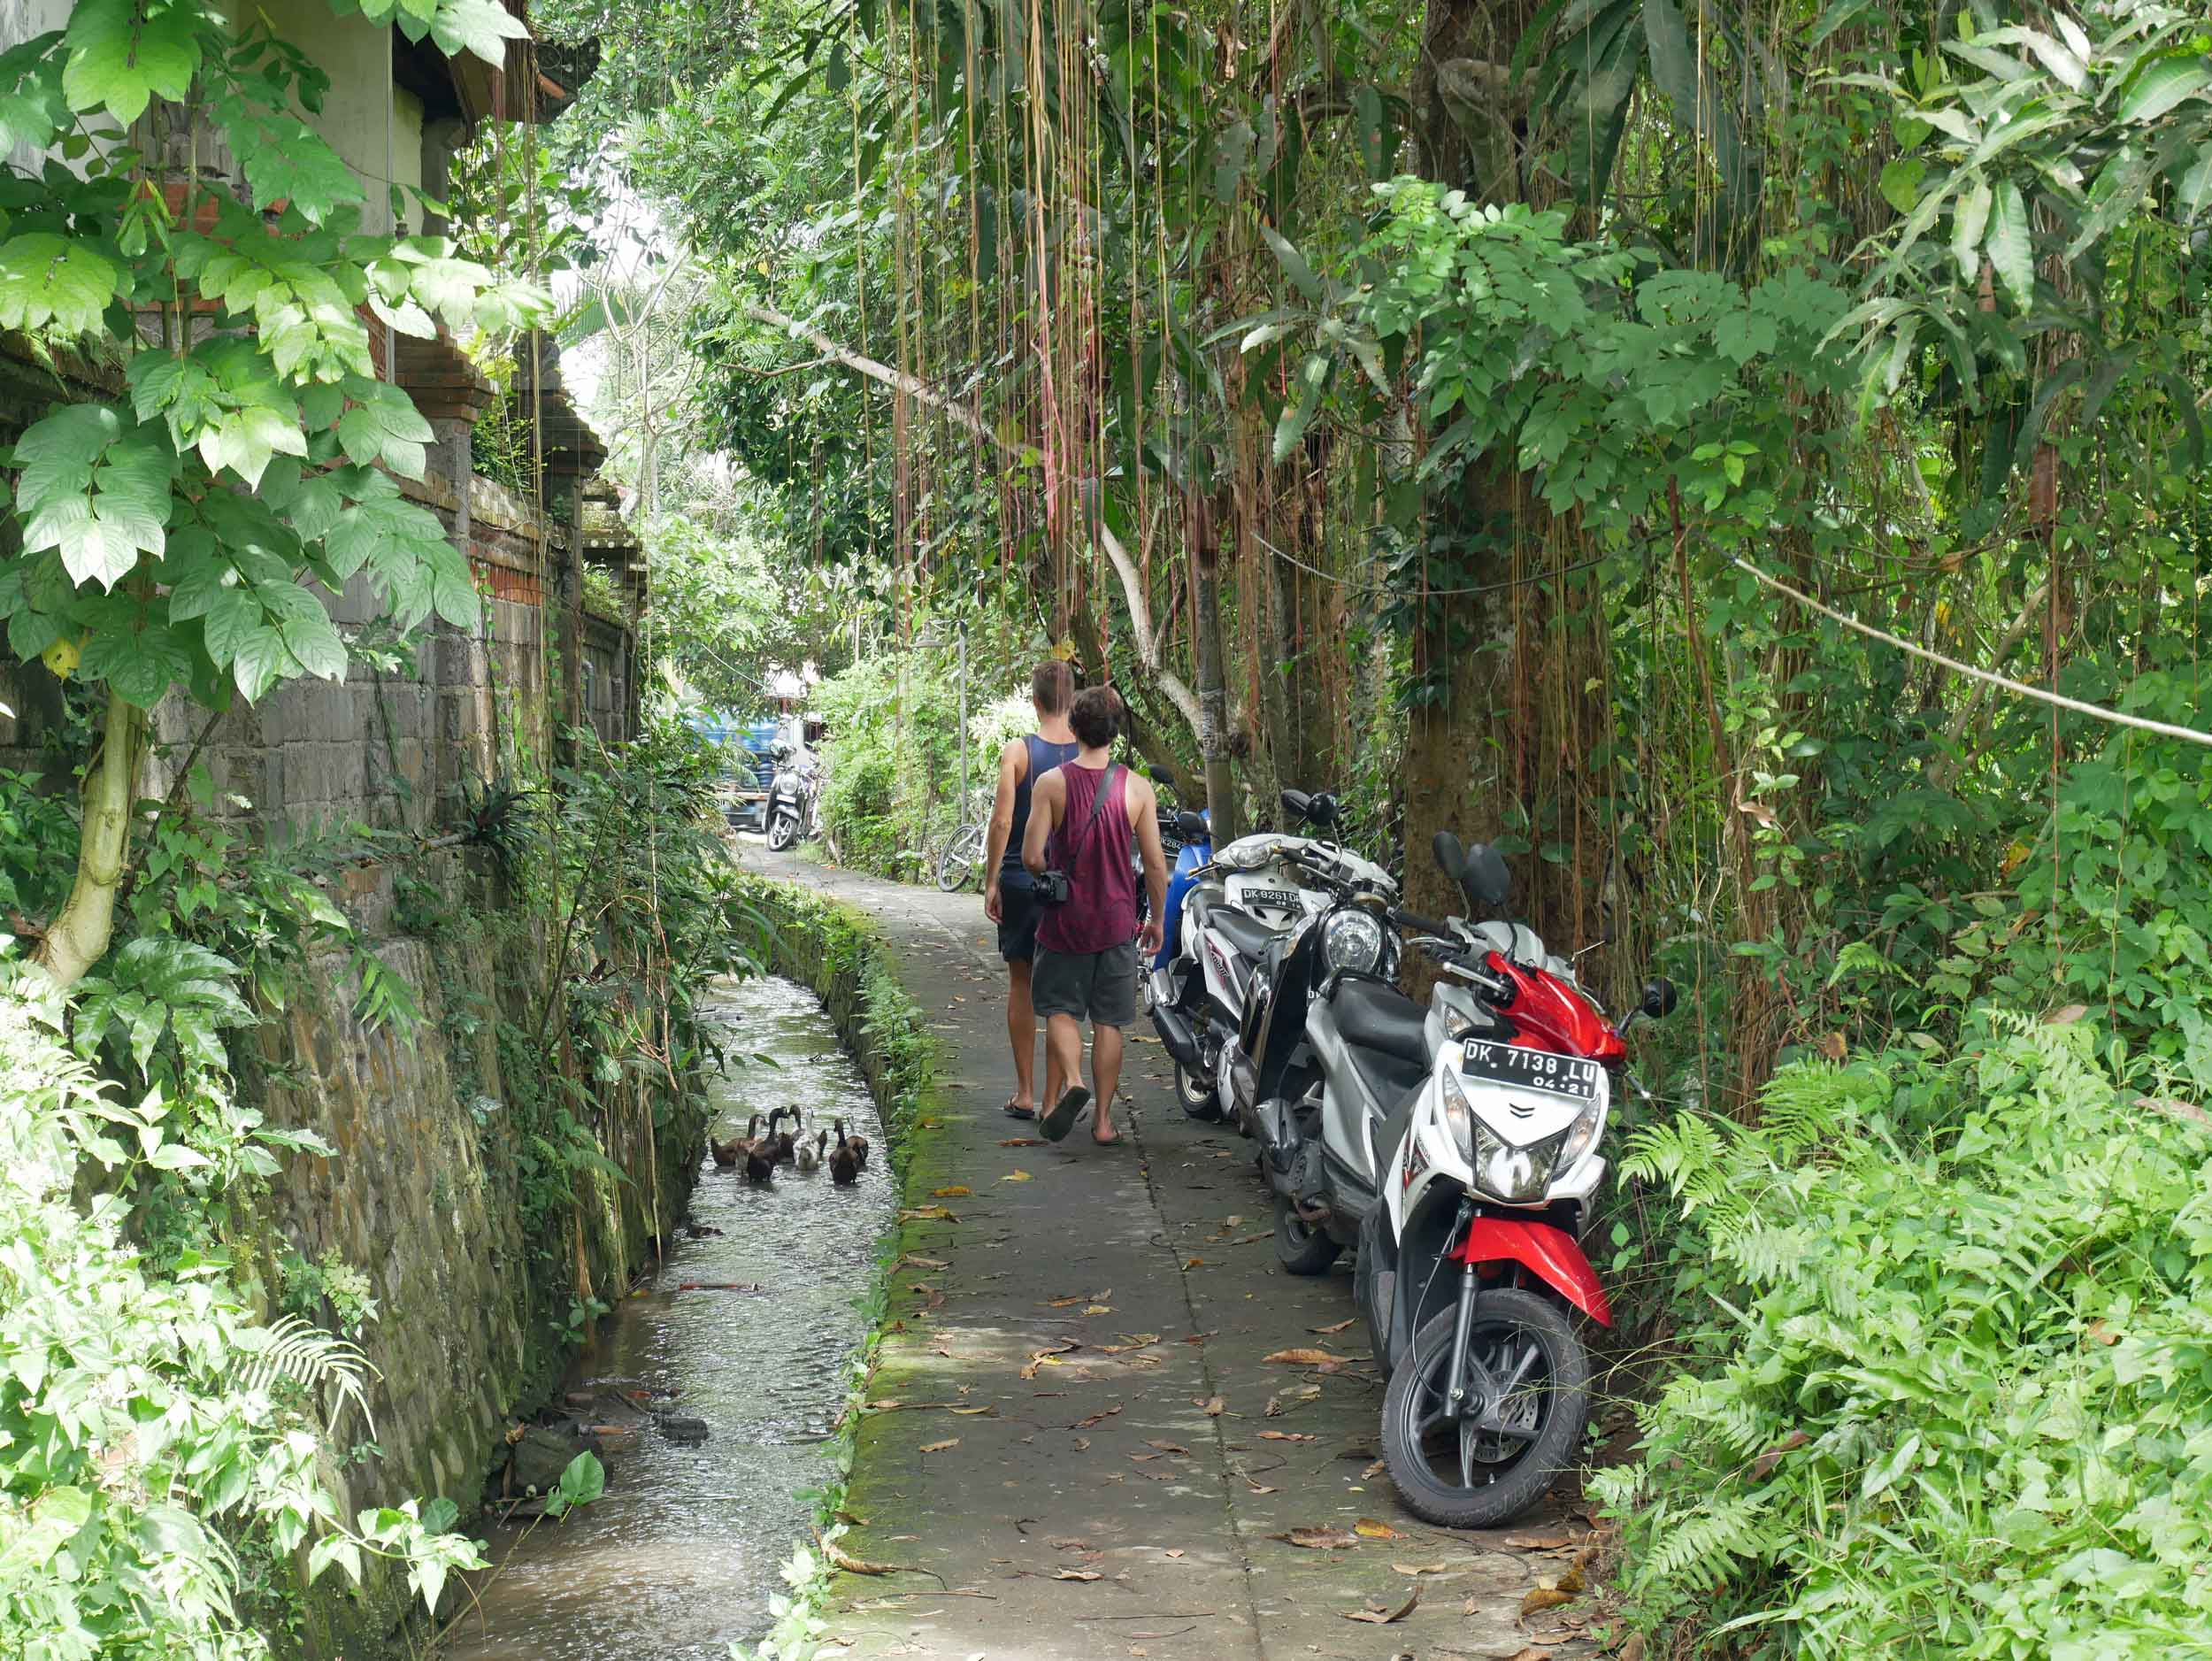 We were fortunate to be close to an excellent yoga studio and wonderful cafes, so we spent most of our time in Ubud walking the small pathways to get whereever we were going.